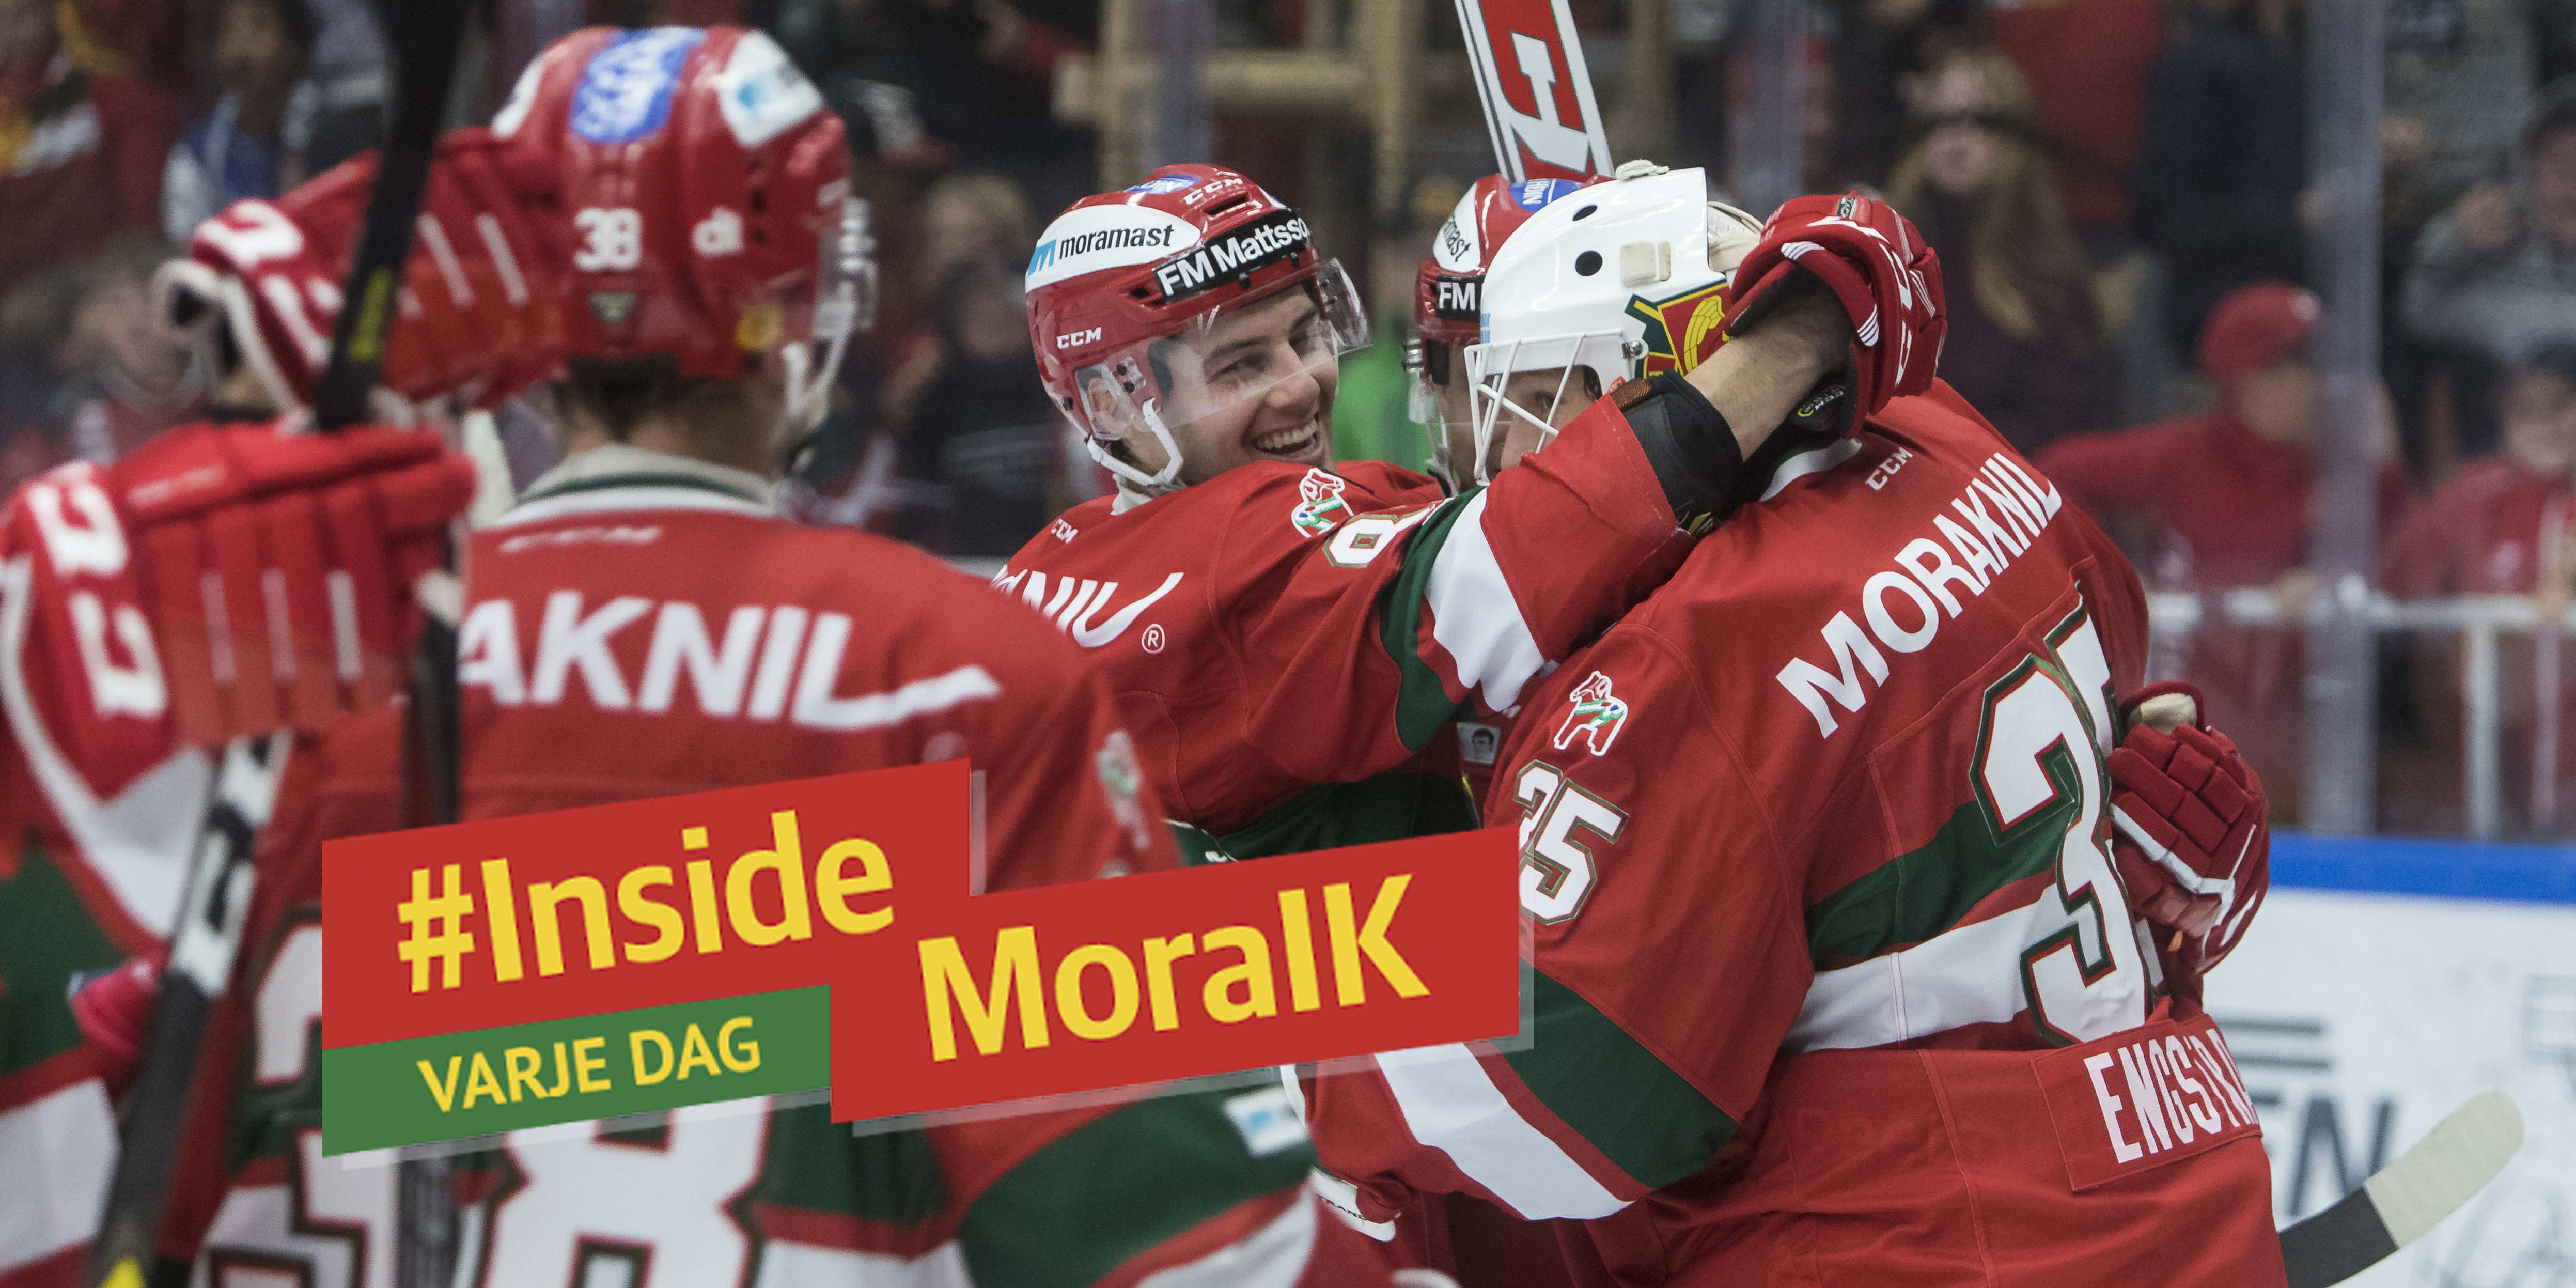 Tung forlust for mora